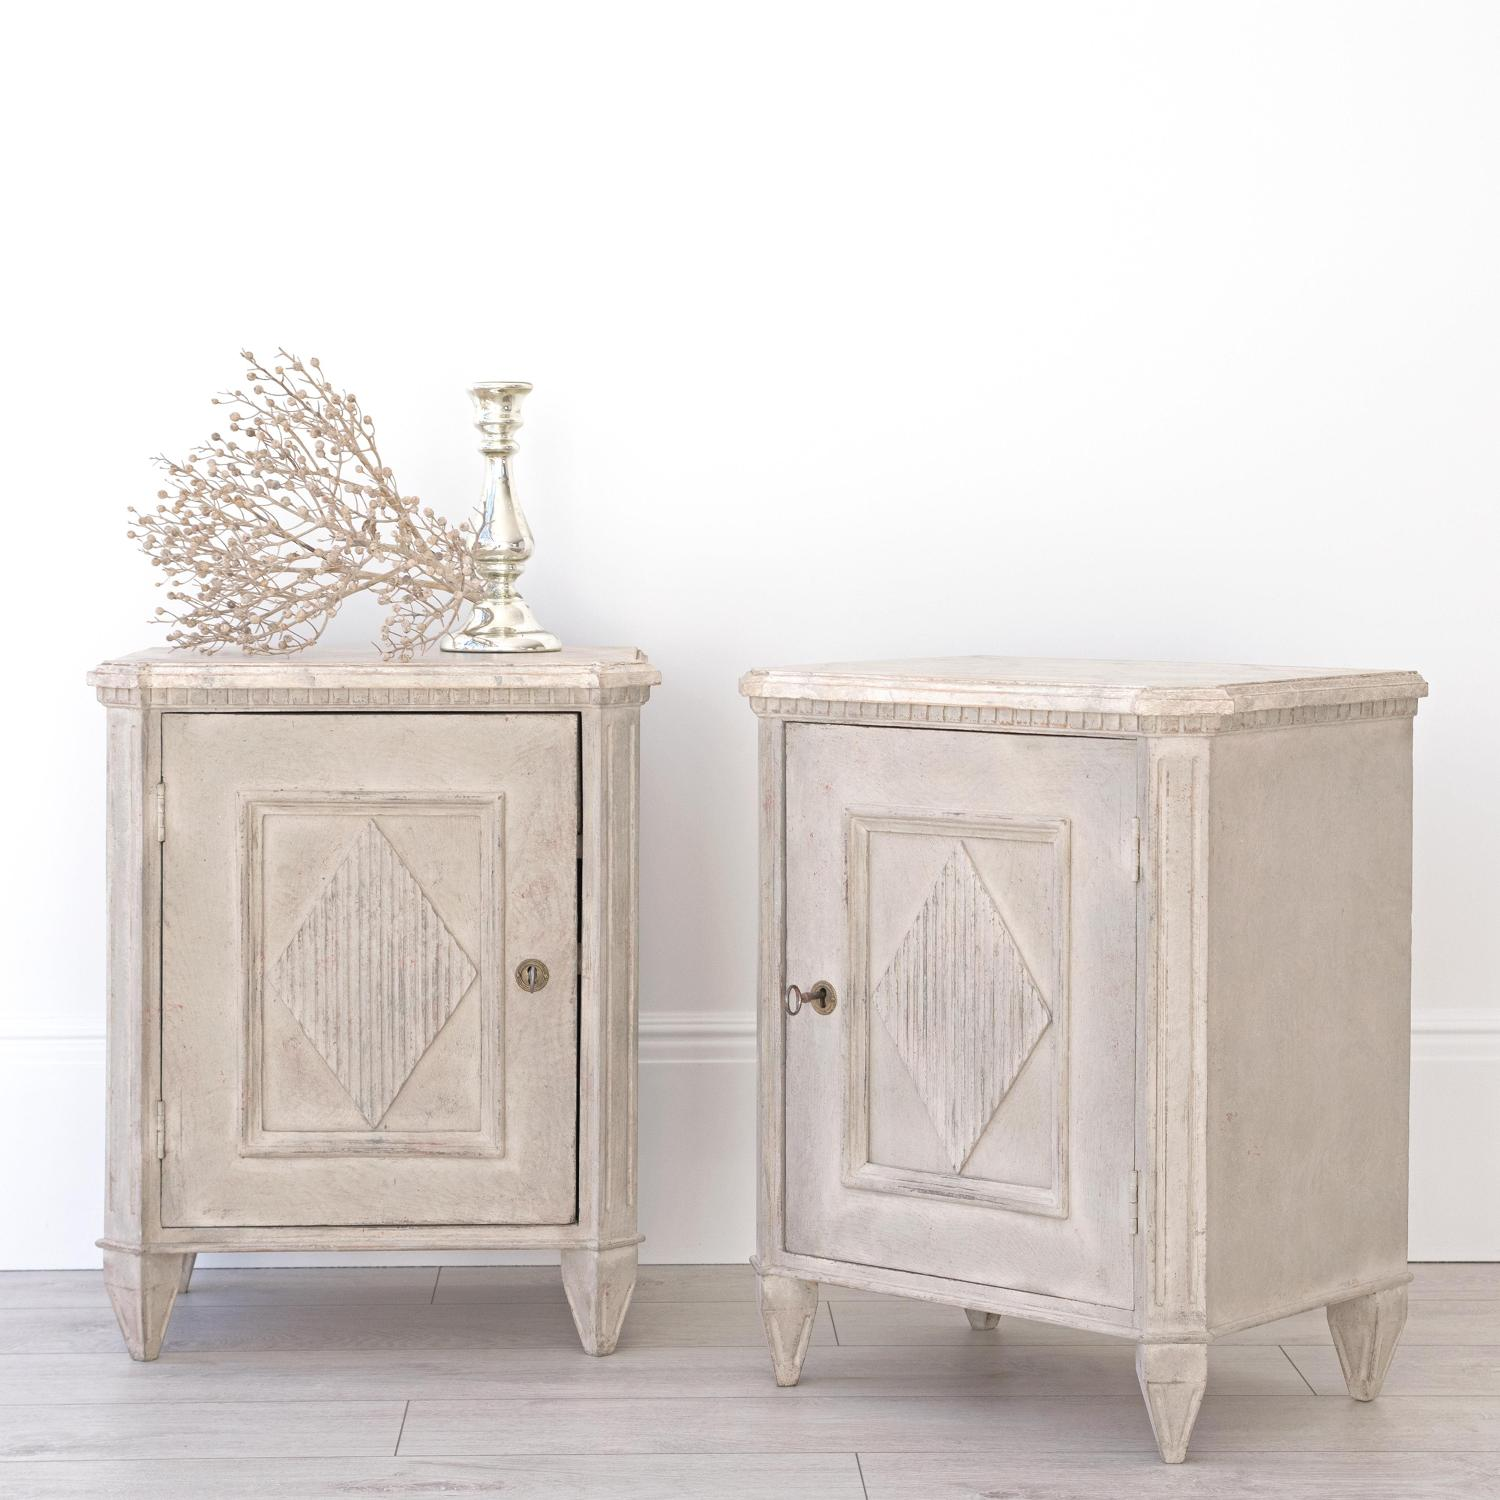 PAIR OF GUSTAVIAN BEDSIDES